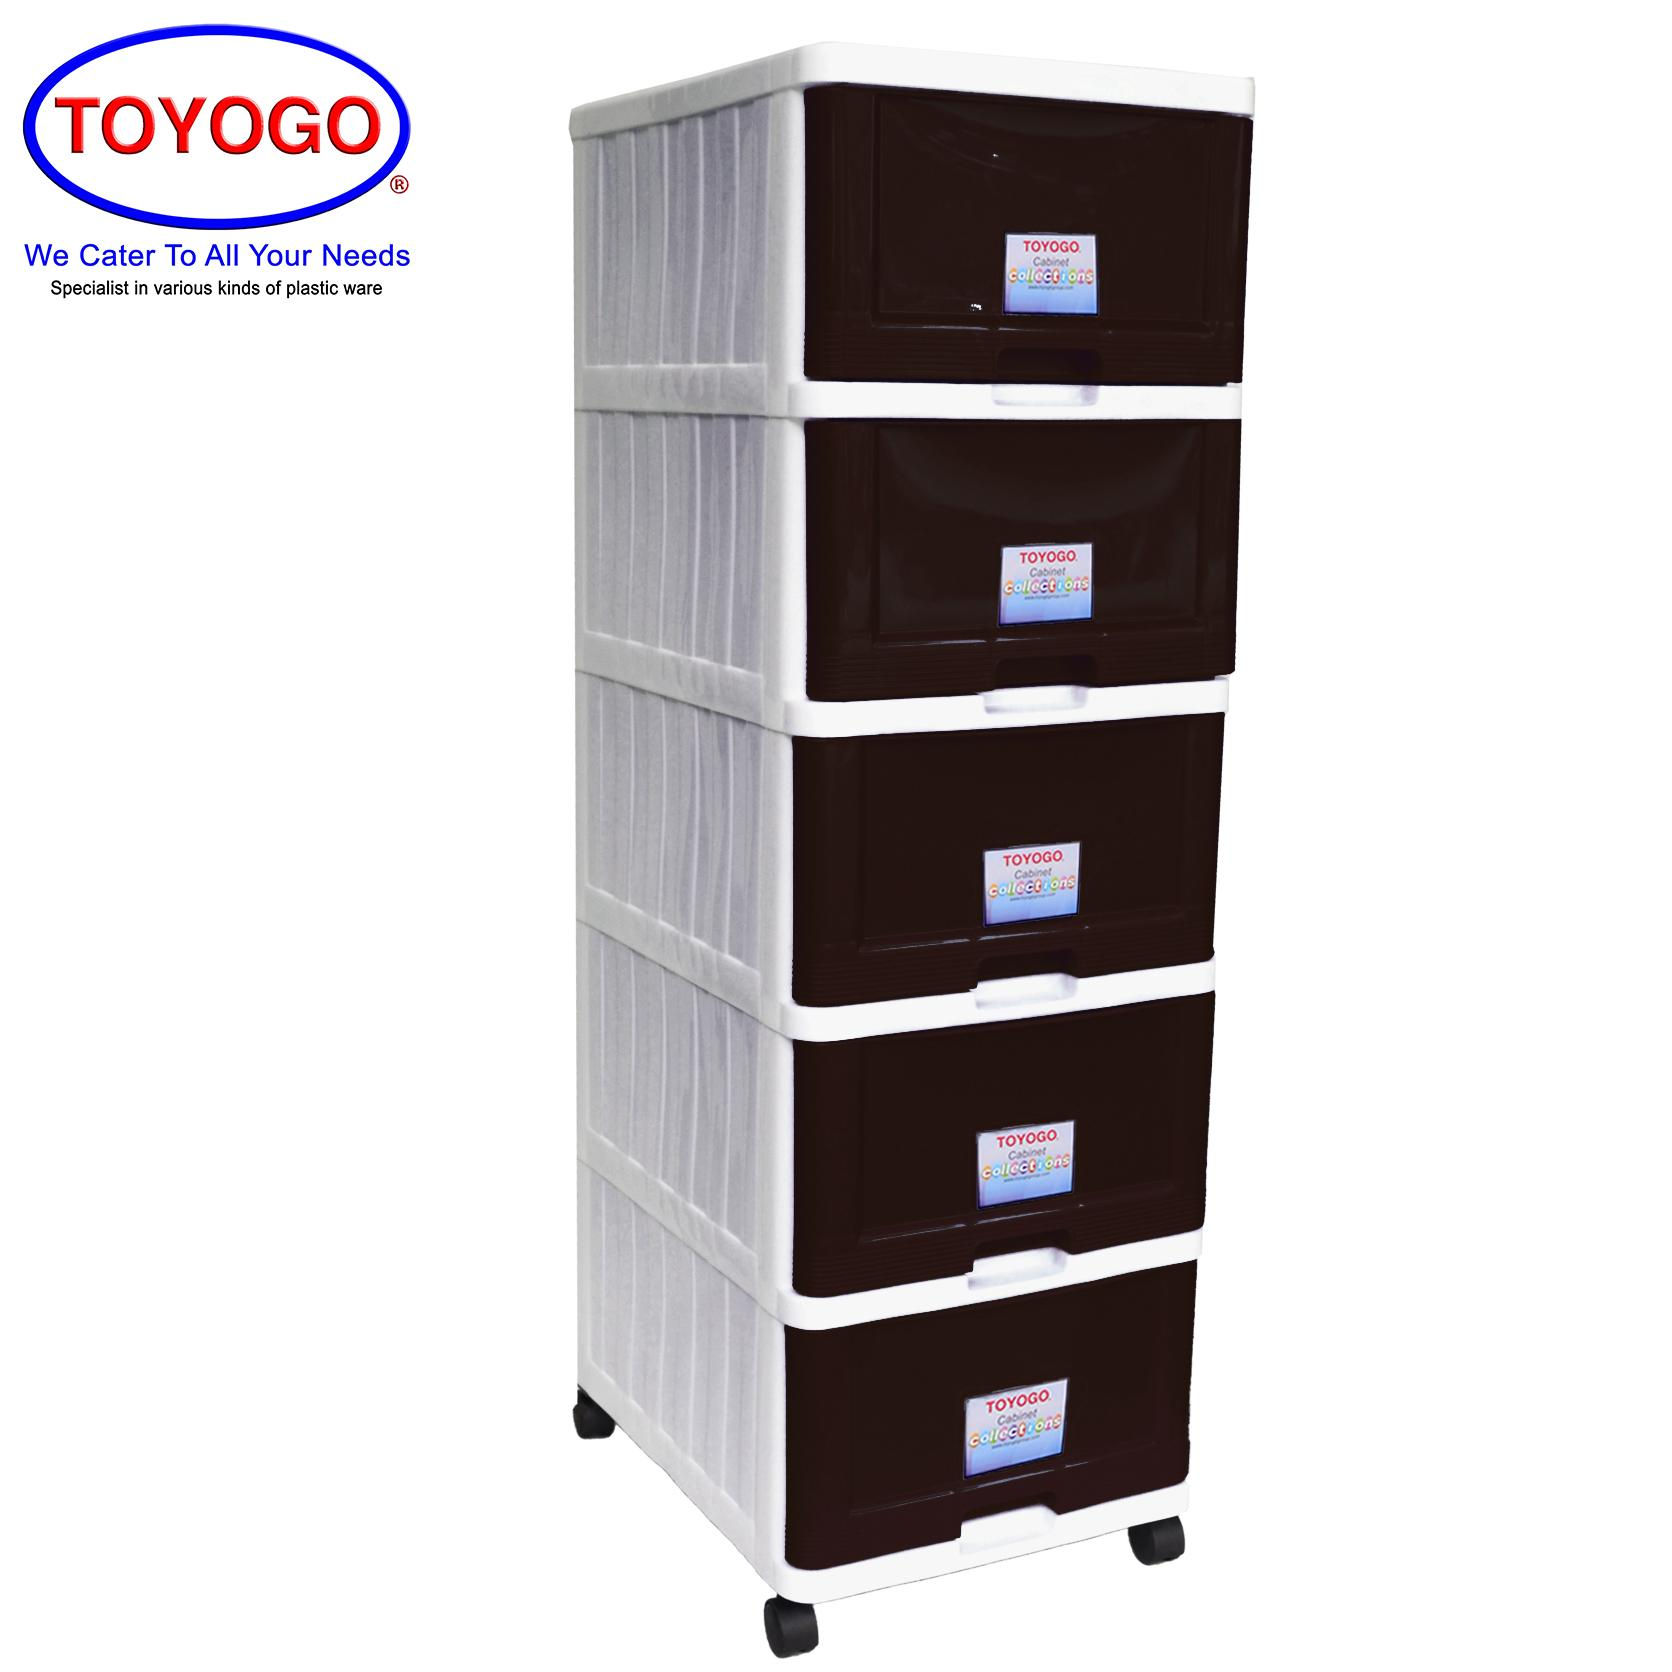 Toyogo Plastic Storage Cabinet / Drawer With Wheels (5 Tier) (707-5)